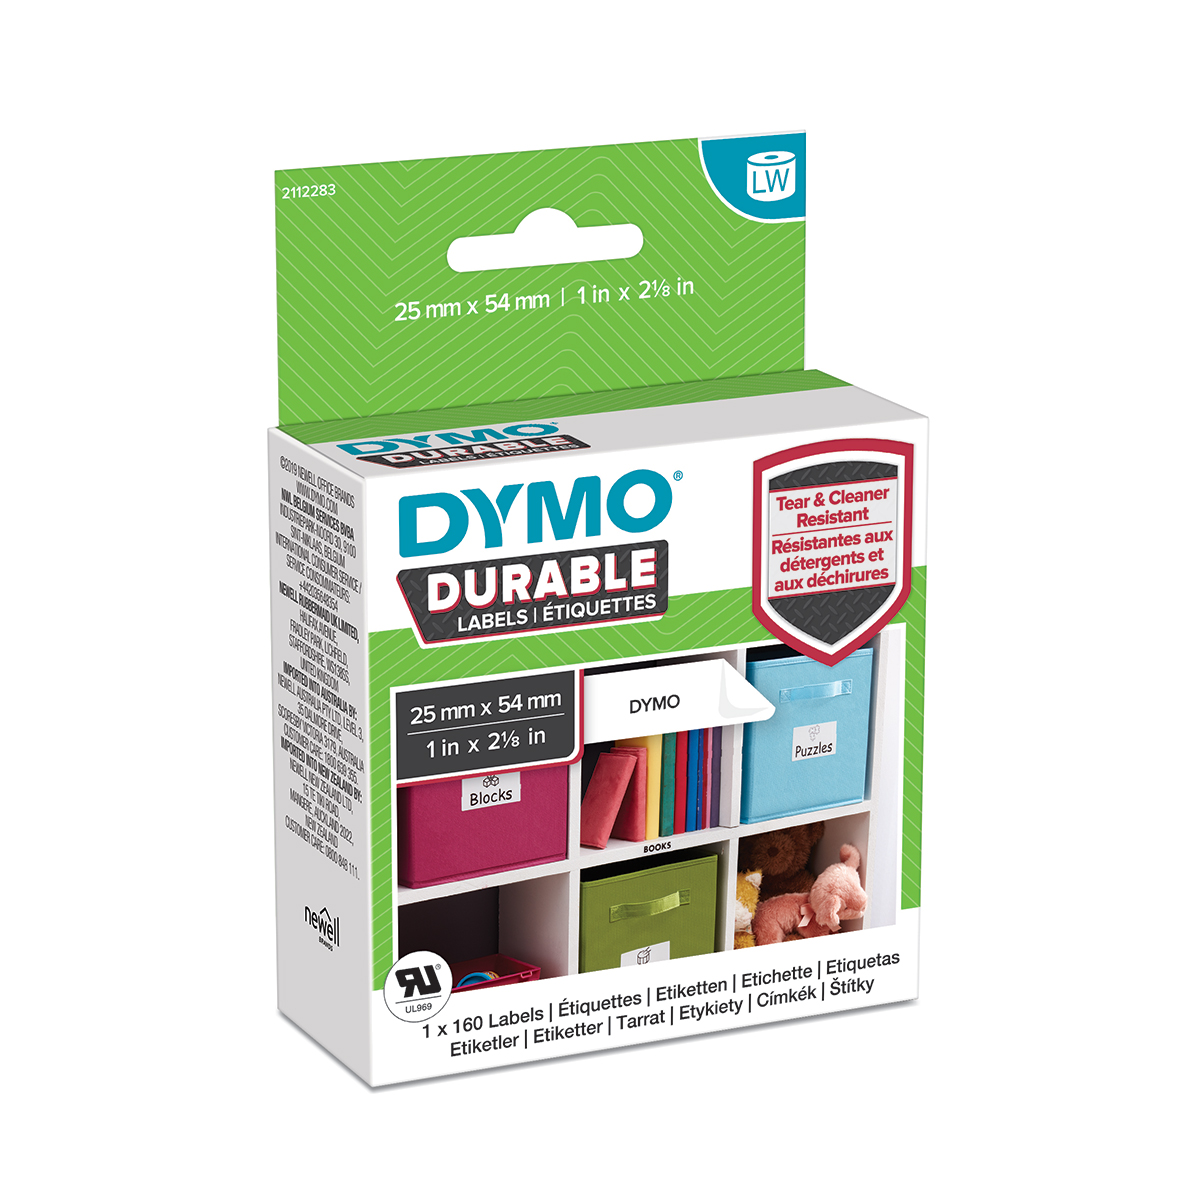 Dymo 1976411 LW Durable Small Multi Purpose Label 25mm x 54mm Black on White